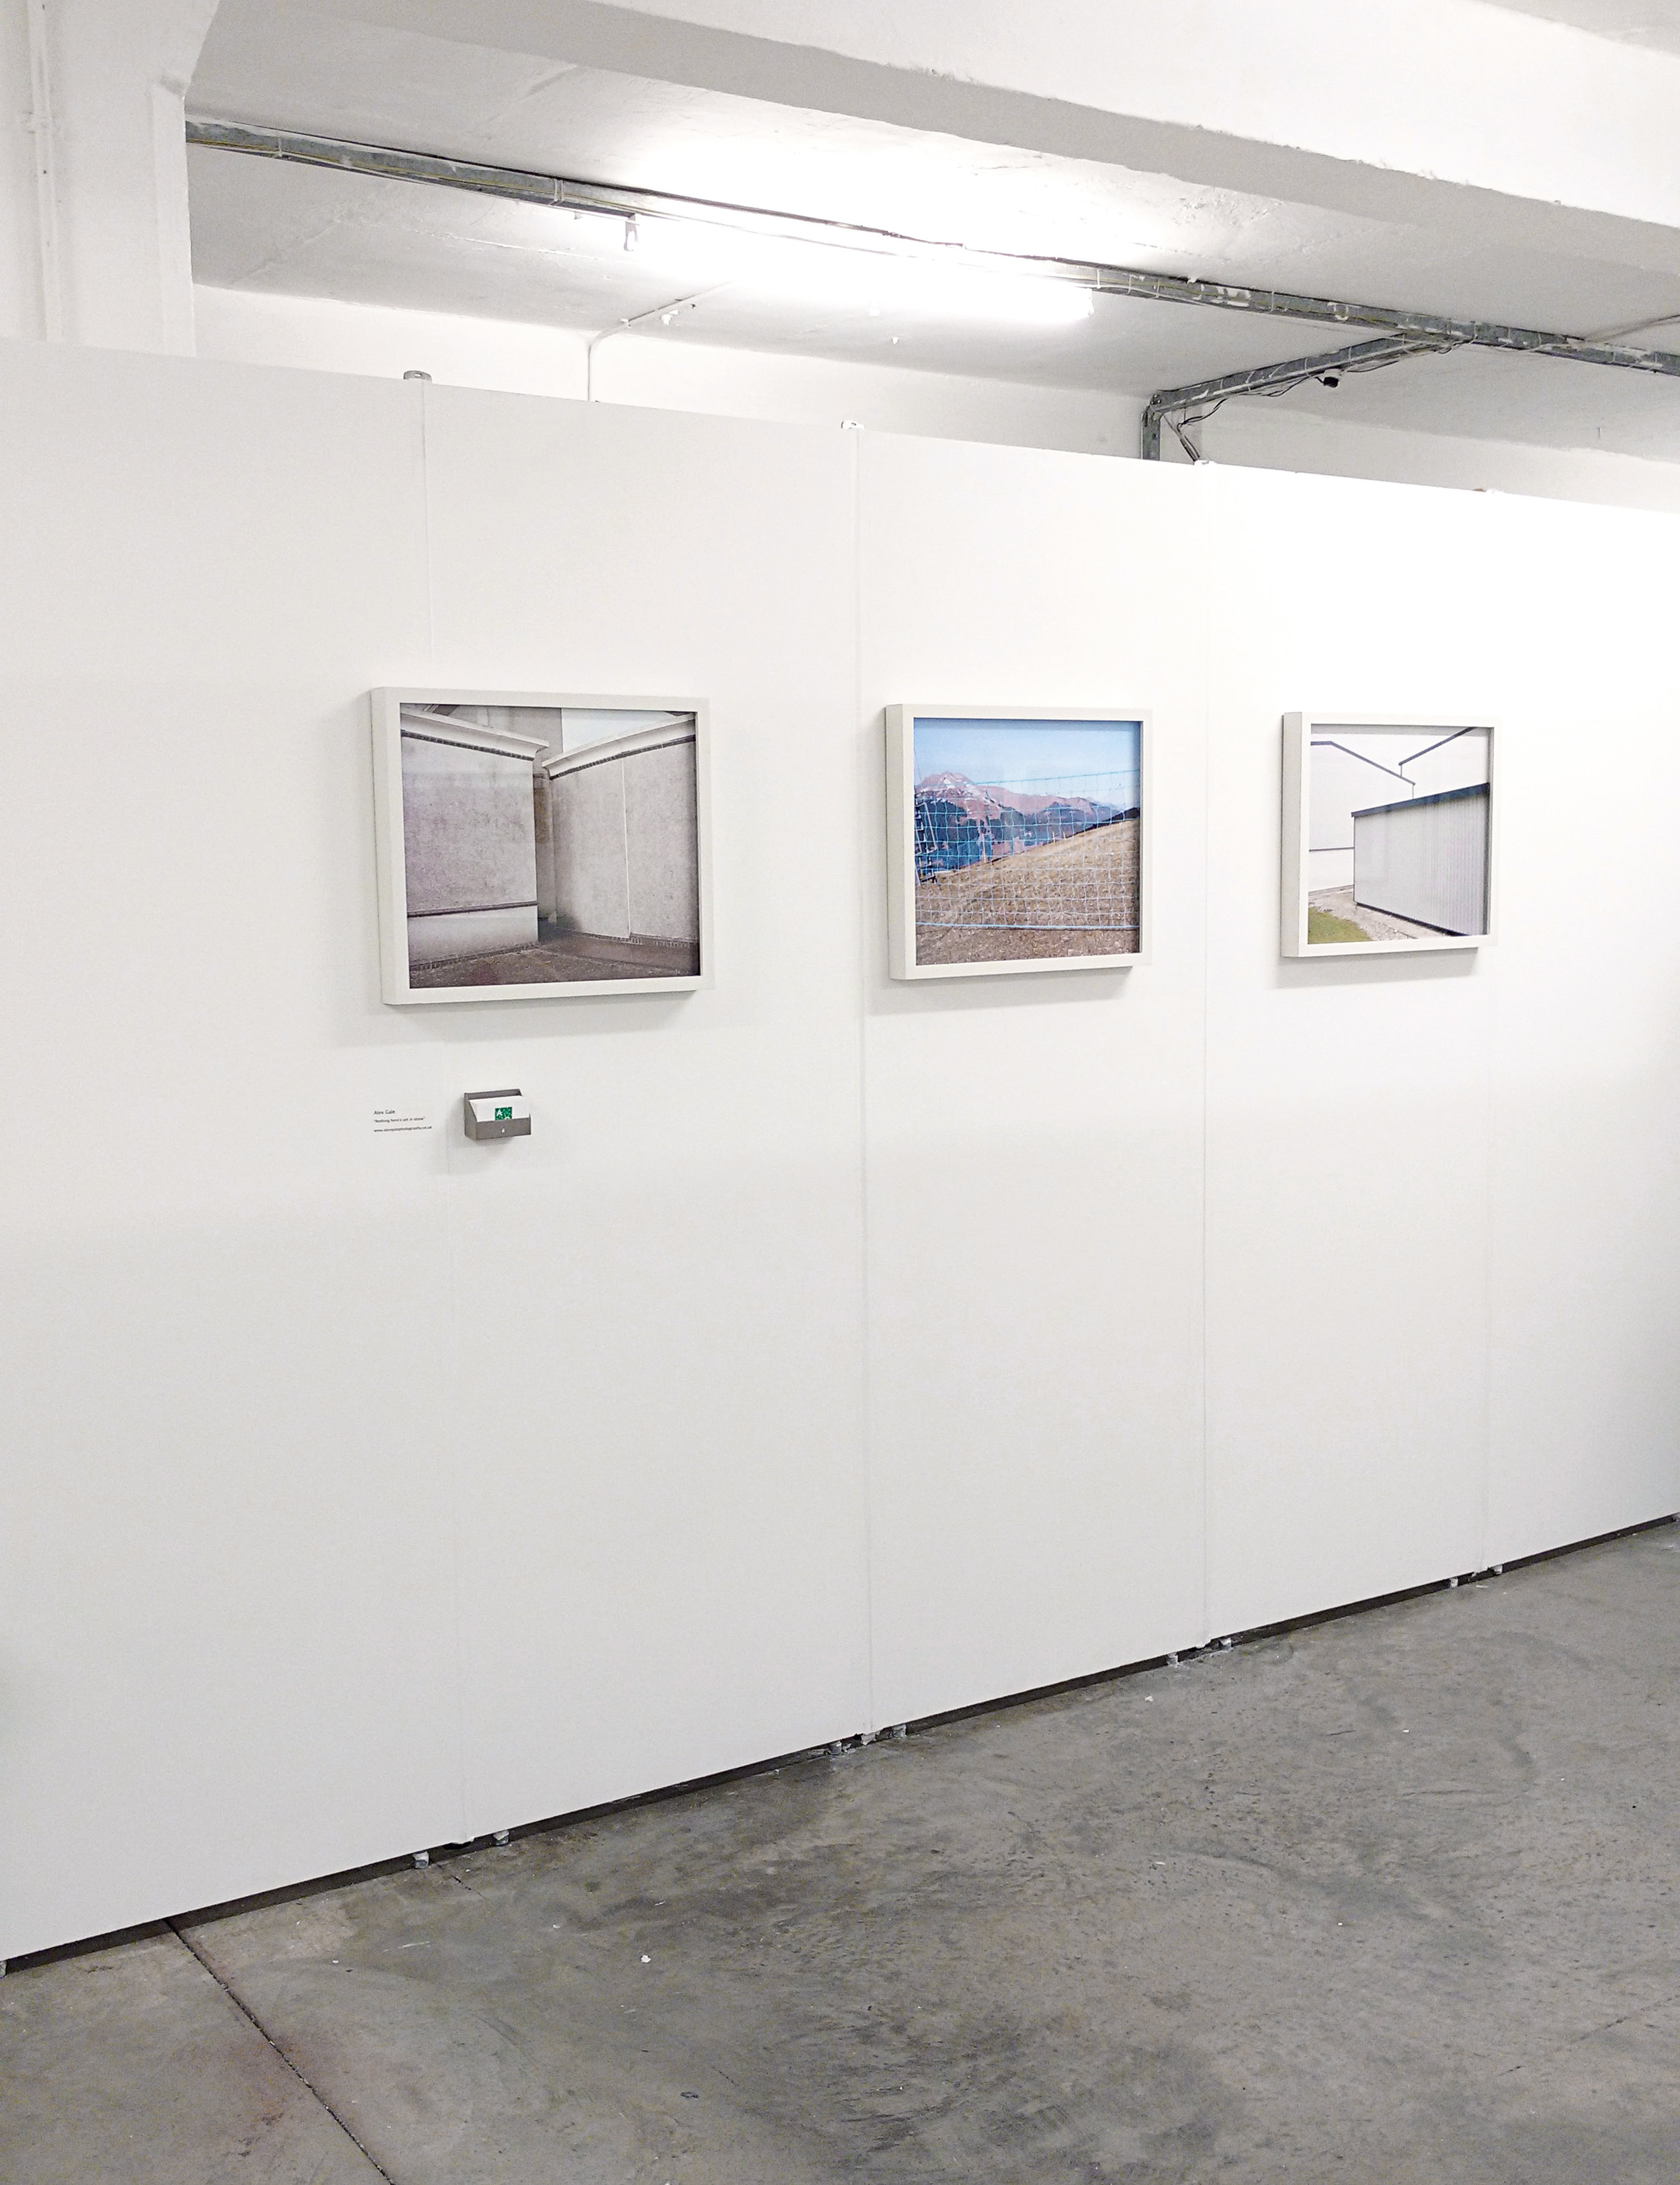 Images from the series,  Nothing here's set in stone  on show at  Free Range 2016 .